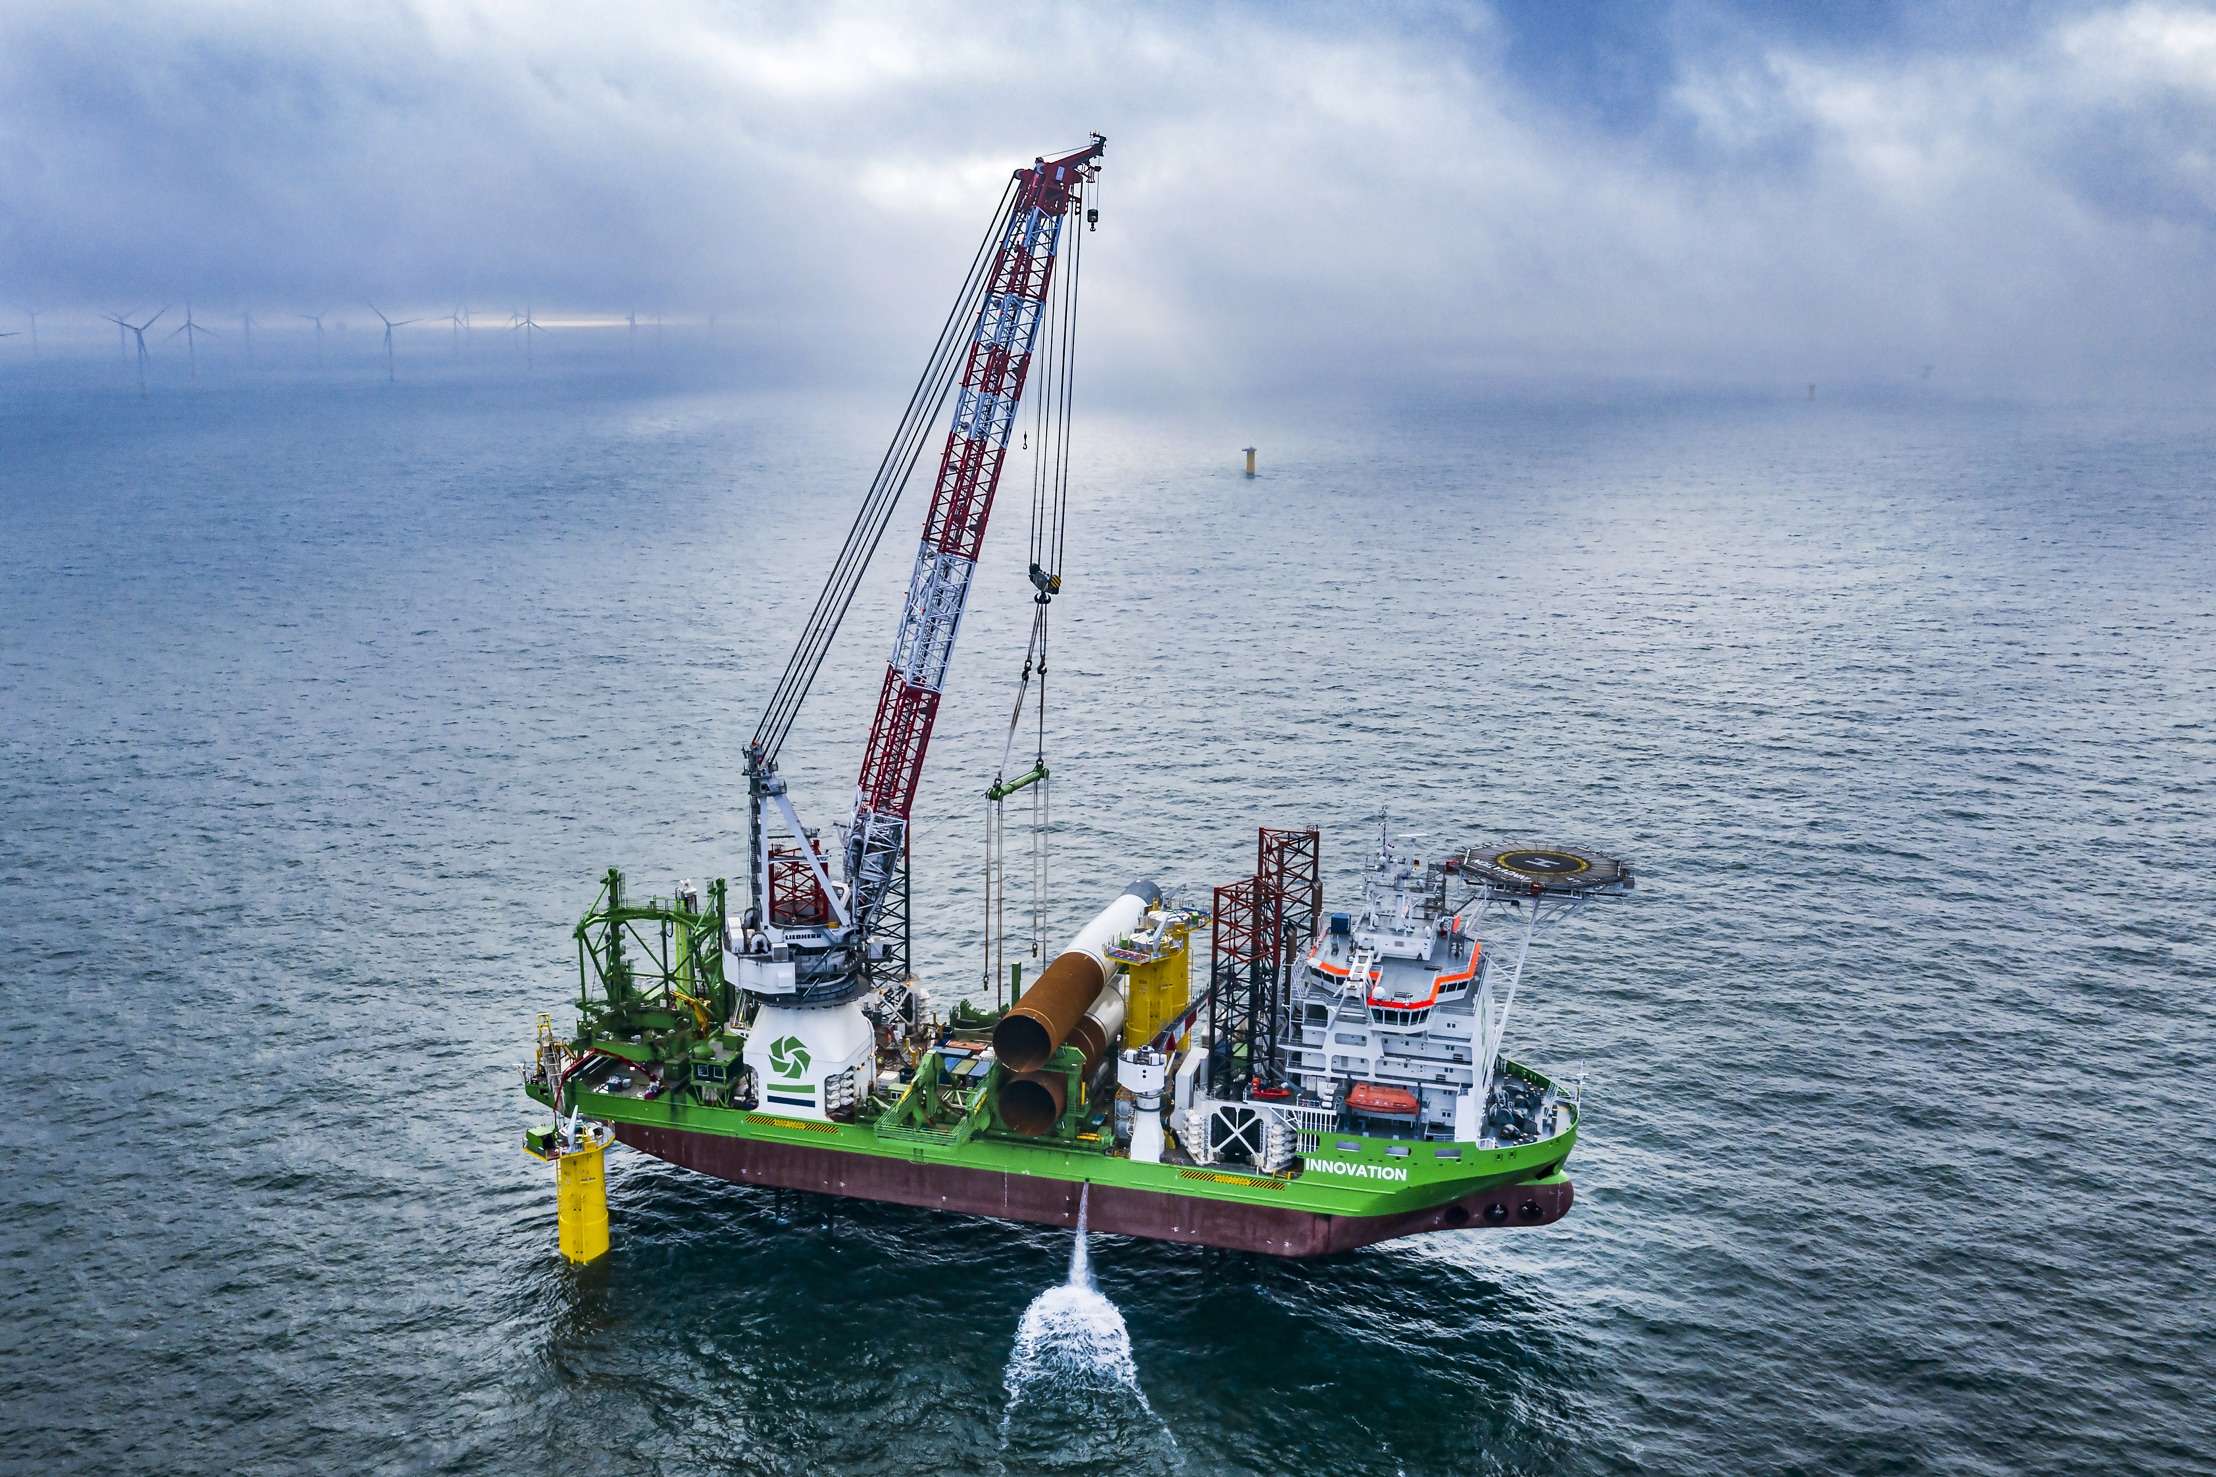 DEME Offshore and Herrenknecht sign agreement for fabrication of a subsea drill for XL-monopile installation at Saint-Nazaire offshore wind farm